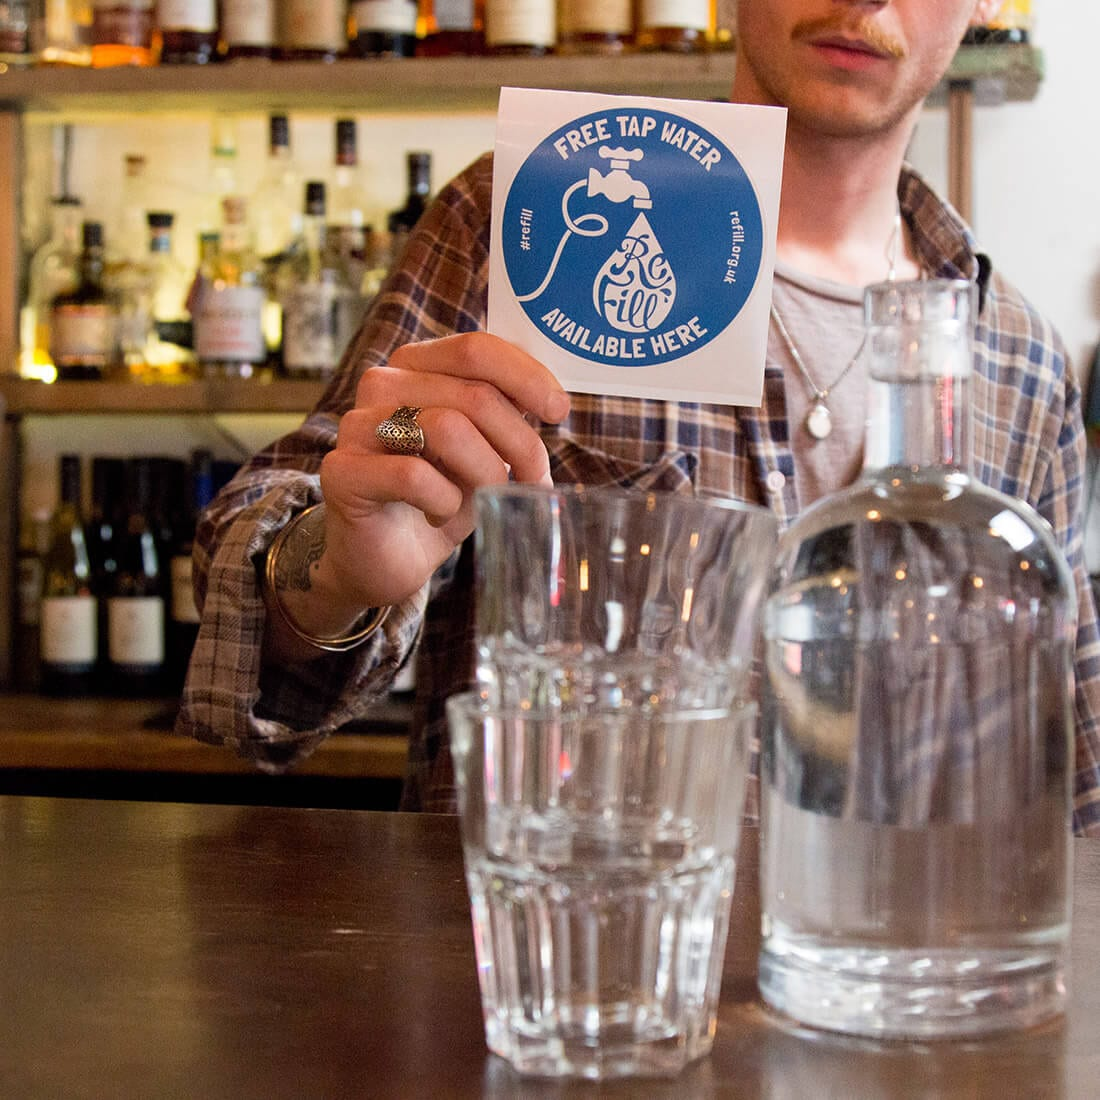 man in bar with Refill sticker and two glasses with a bottle of water